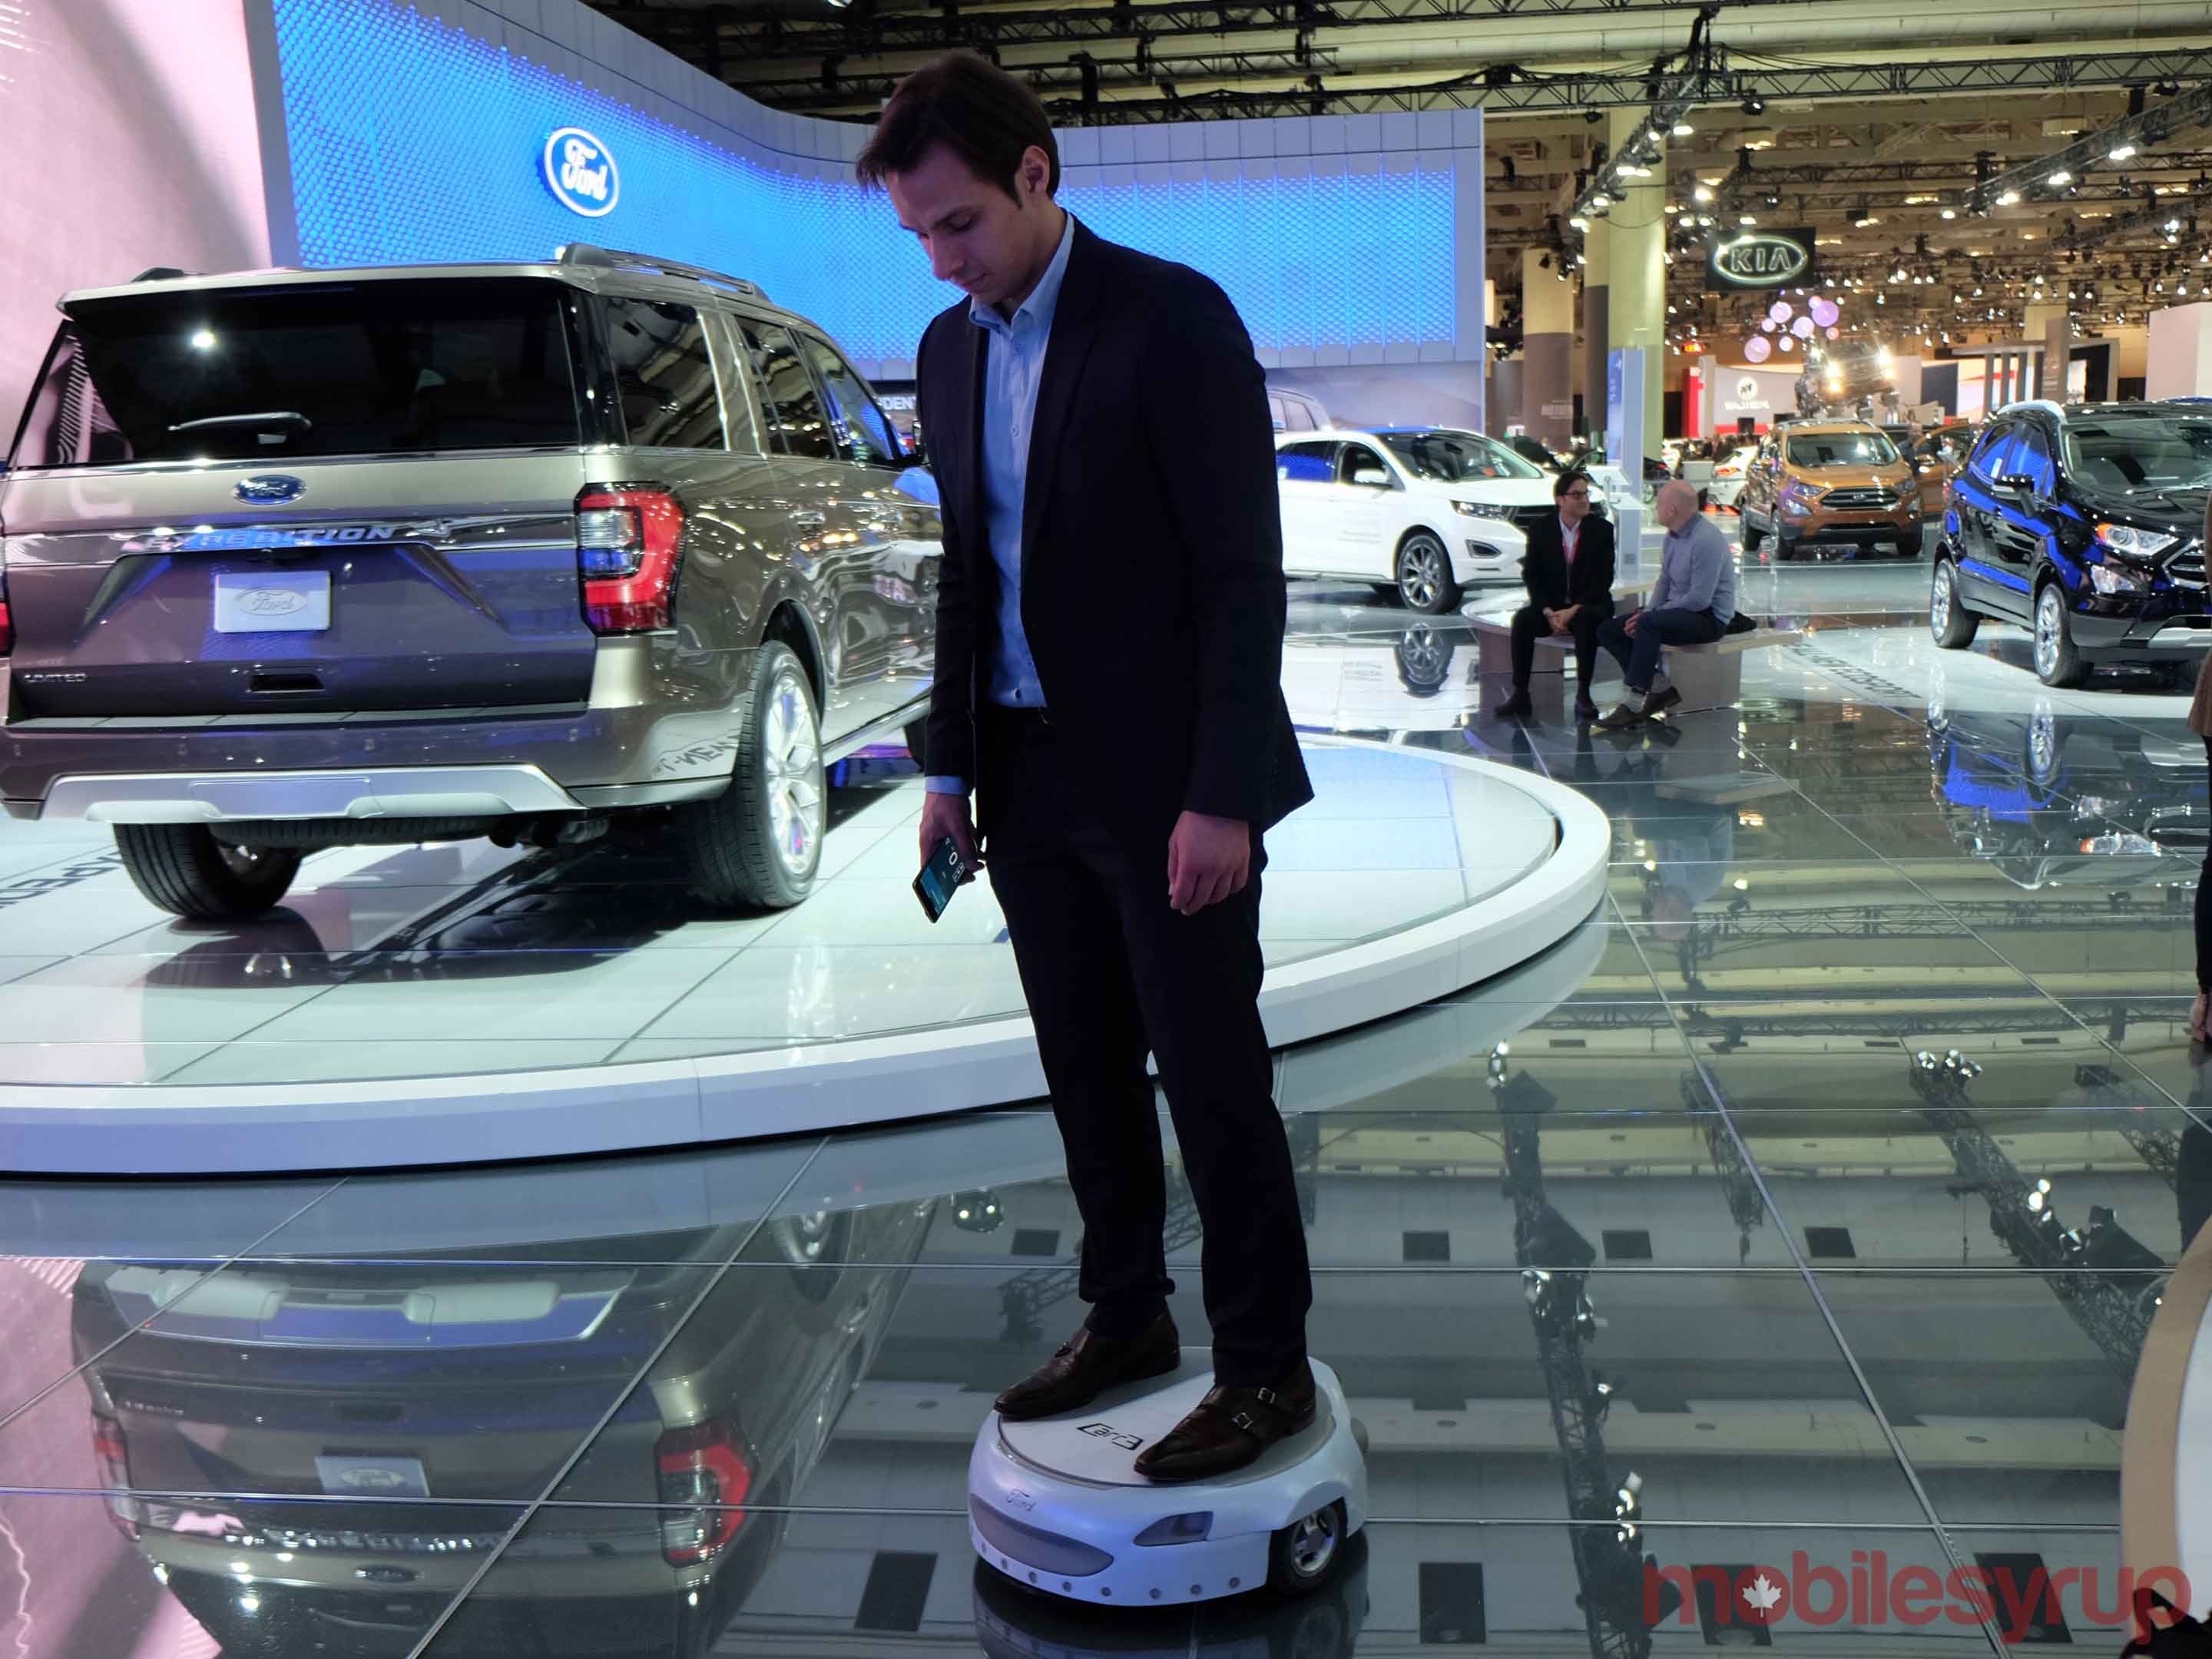 The Carr-E in action at the AutoShow